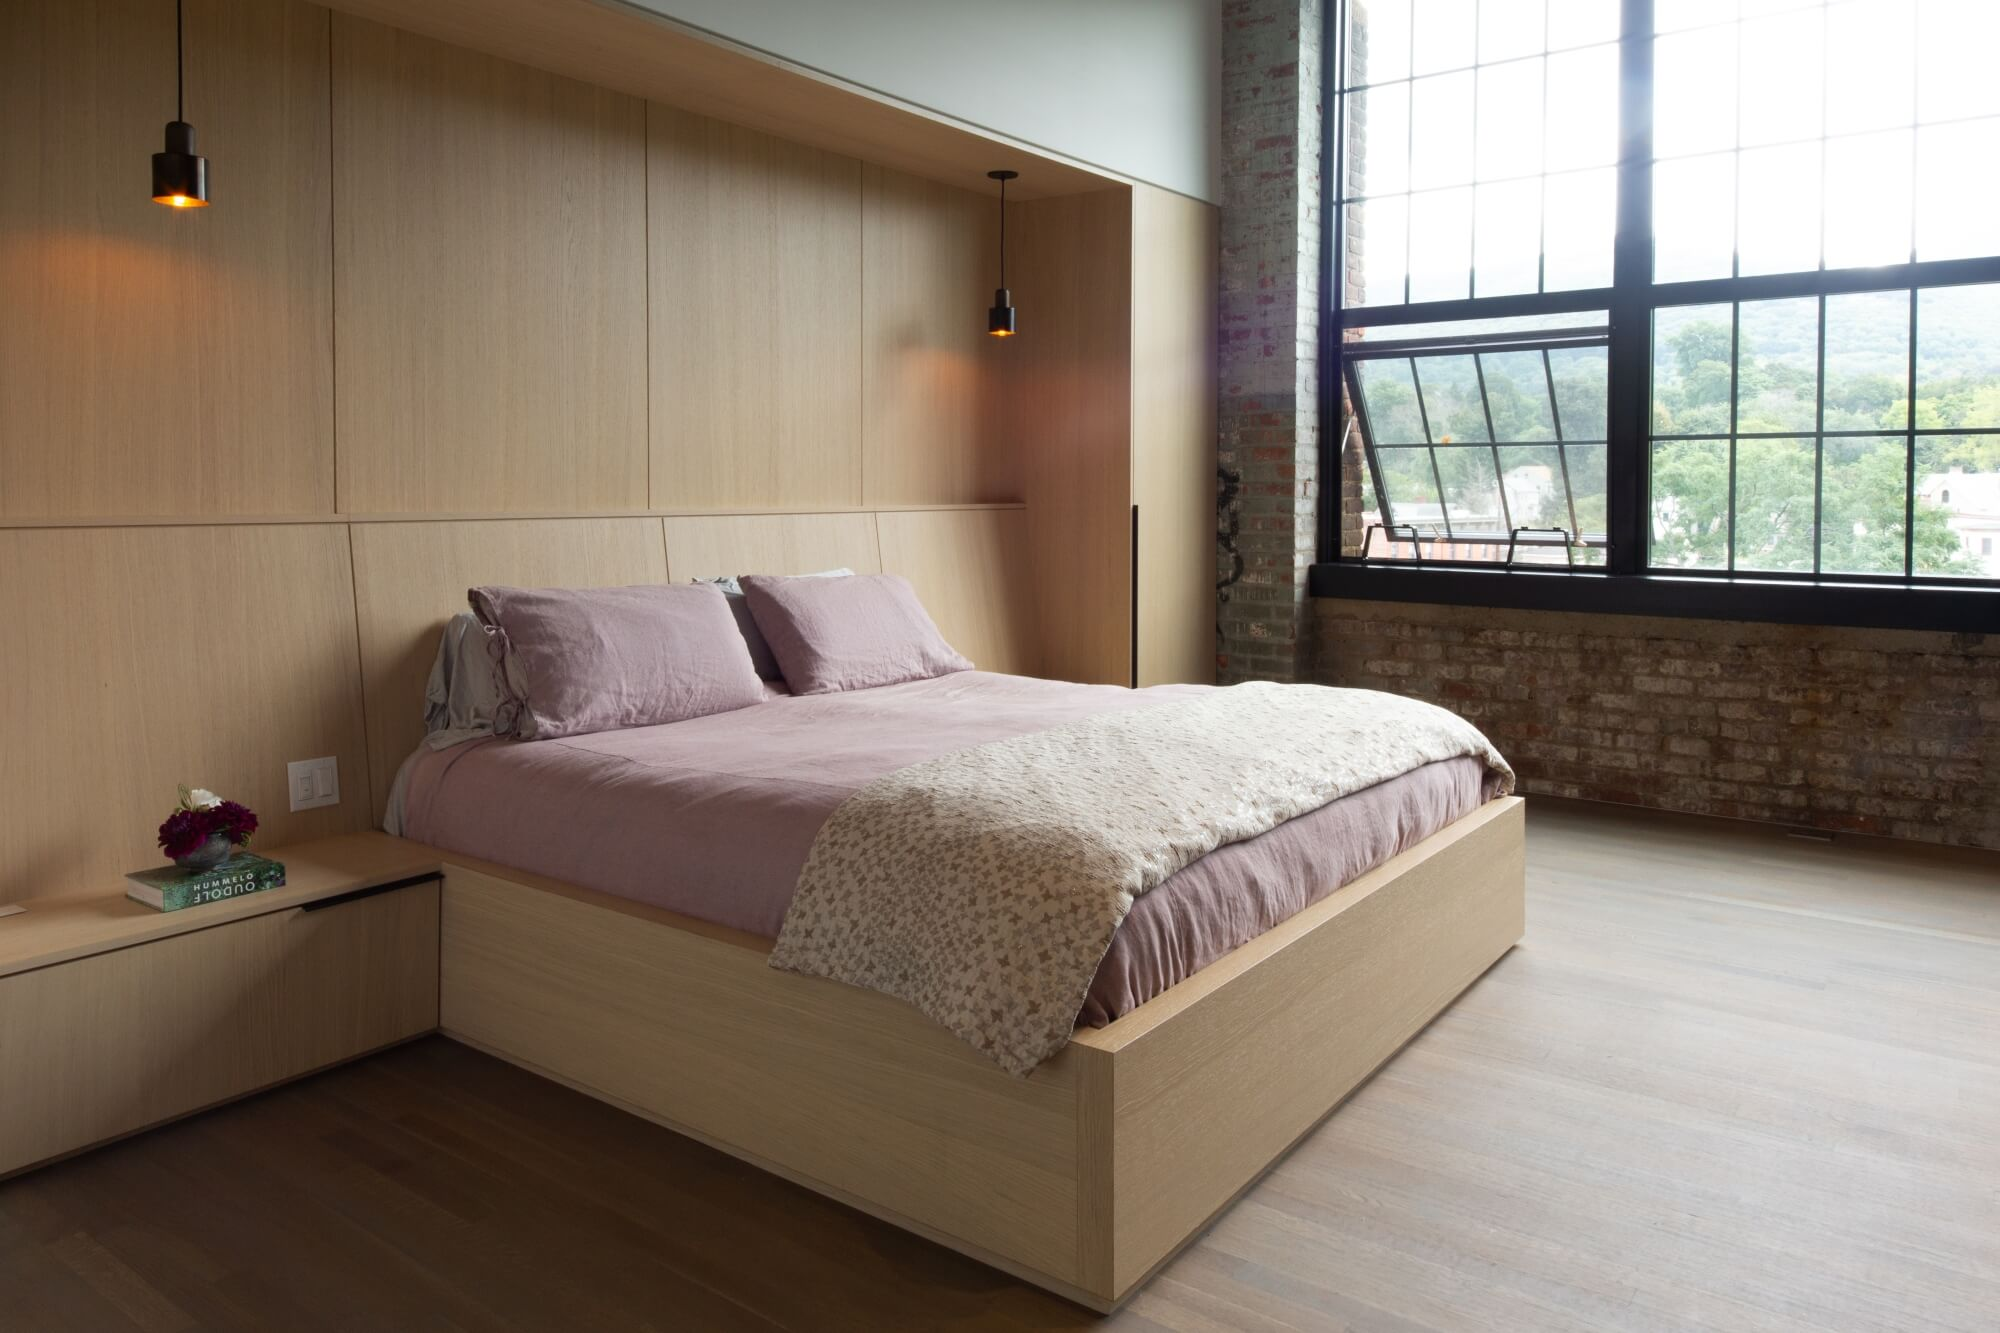 New York loft bedroom with hardwood flooring and a wooden bed frame and headboard.